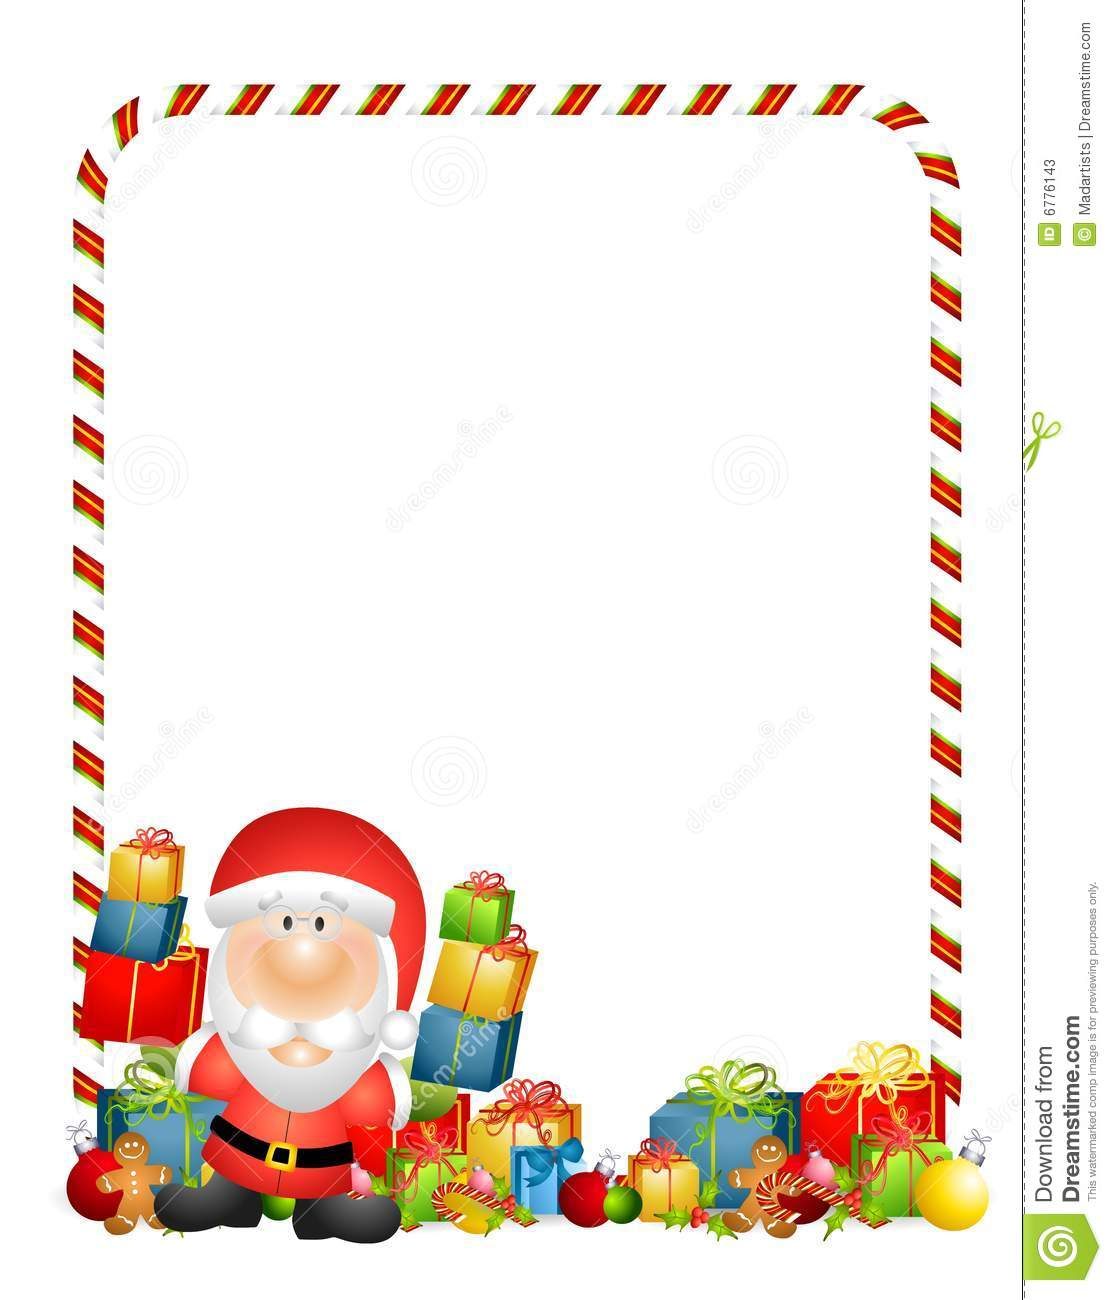 Christmas Toys Border : Santa claus border clipart suggest